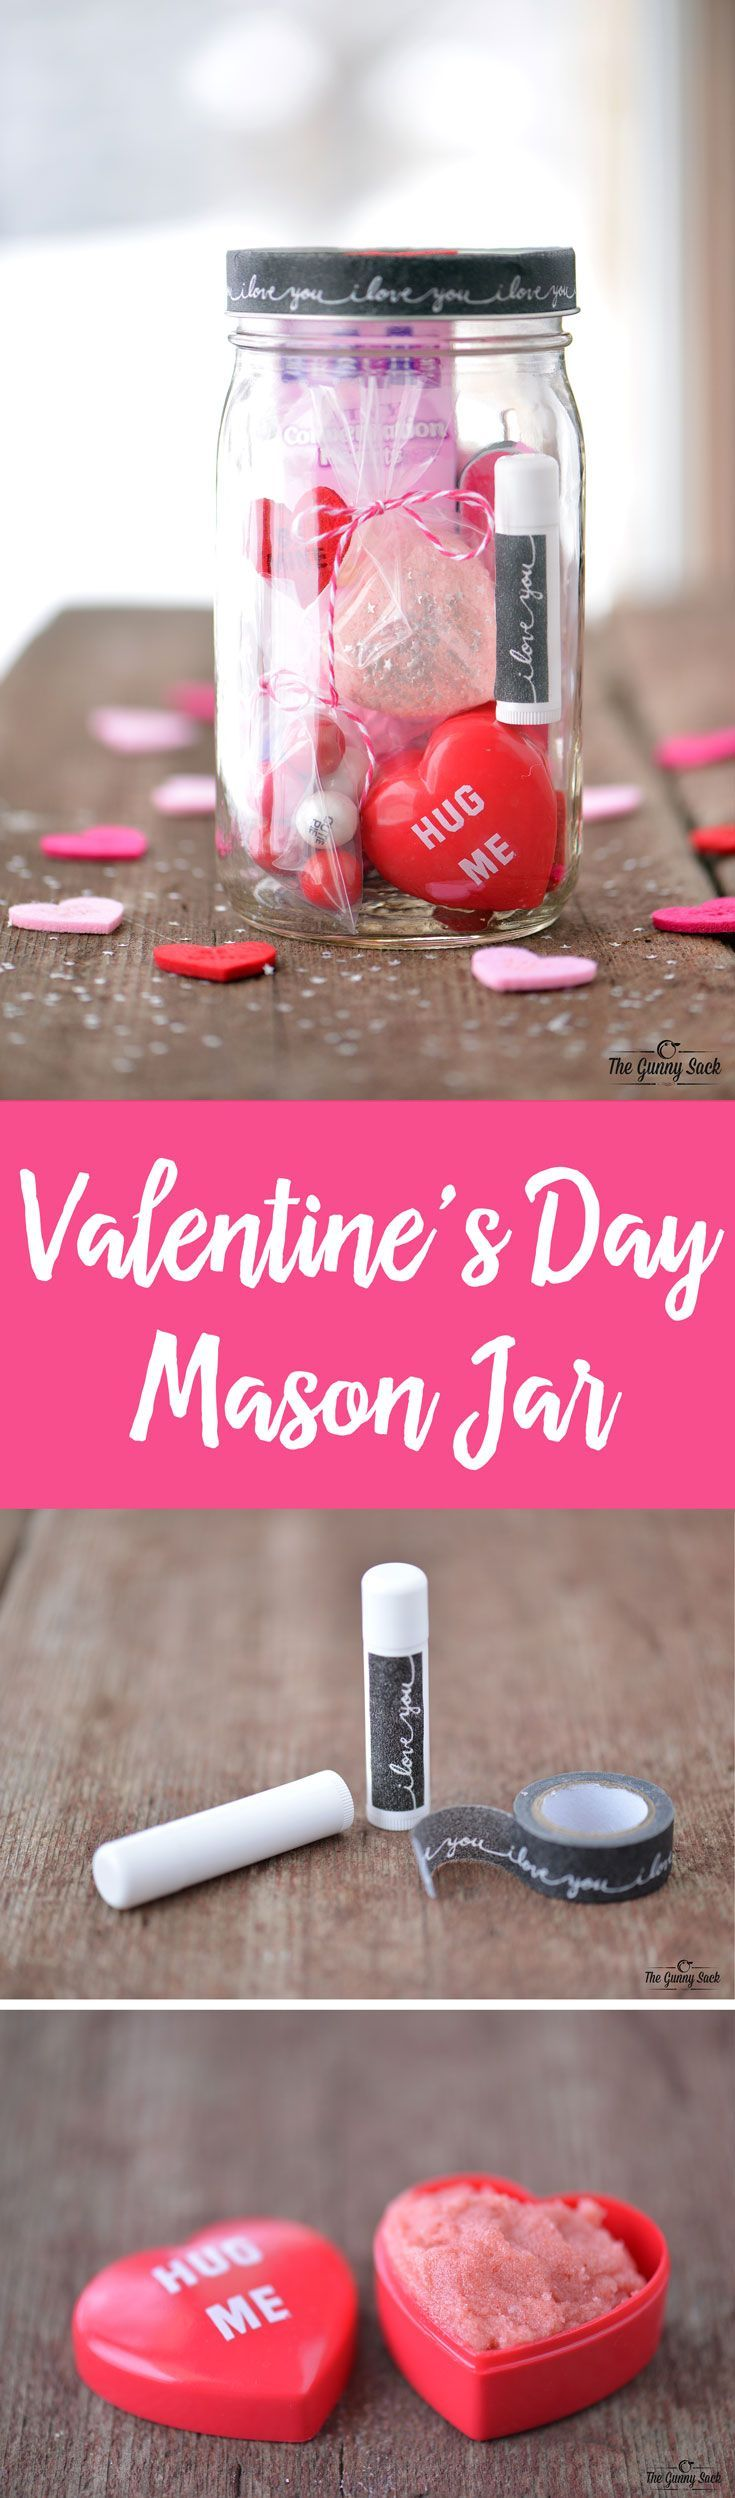 This Valentine's Day Mason Jar is full of pampering spa items and sweet treats. Make a gift in a jar for your wife, girlfriends, teachers or your mom!